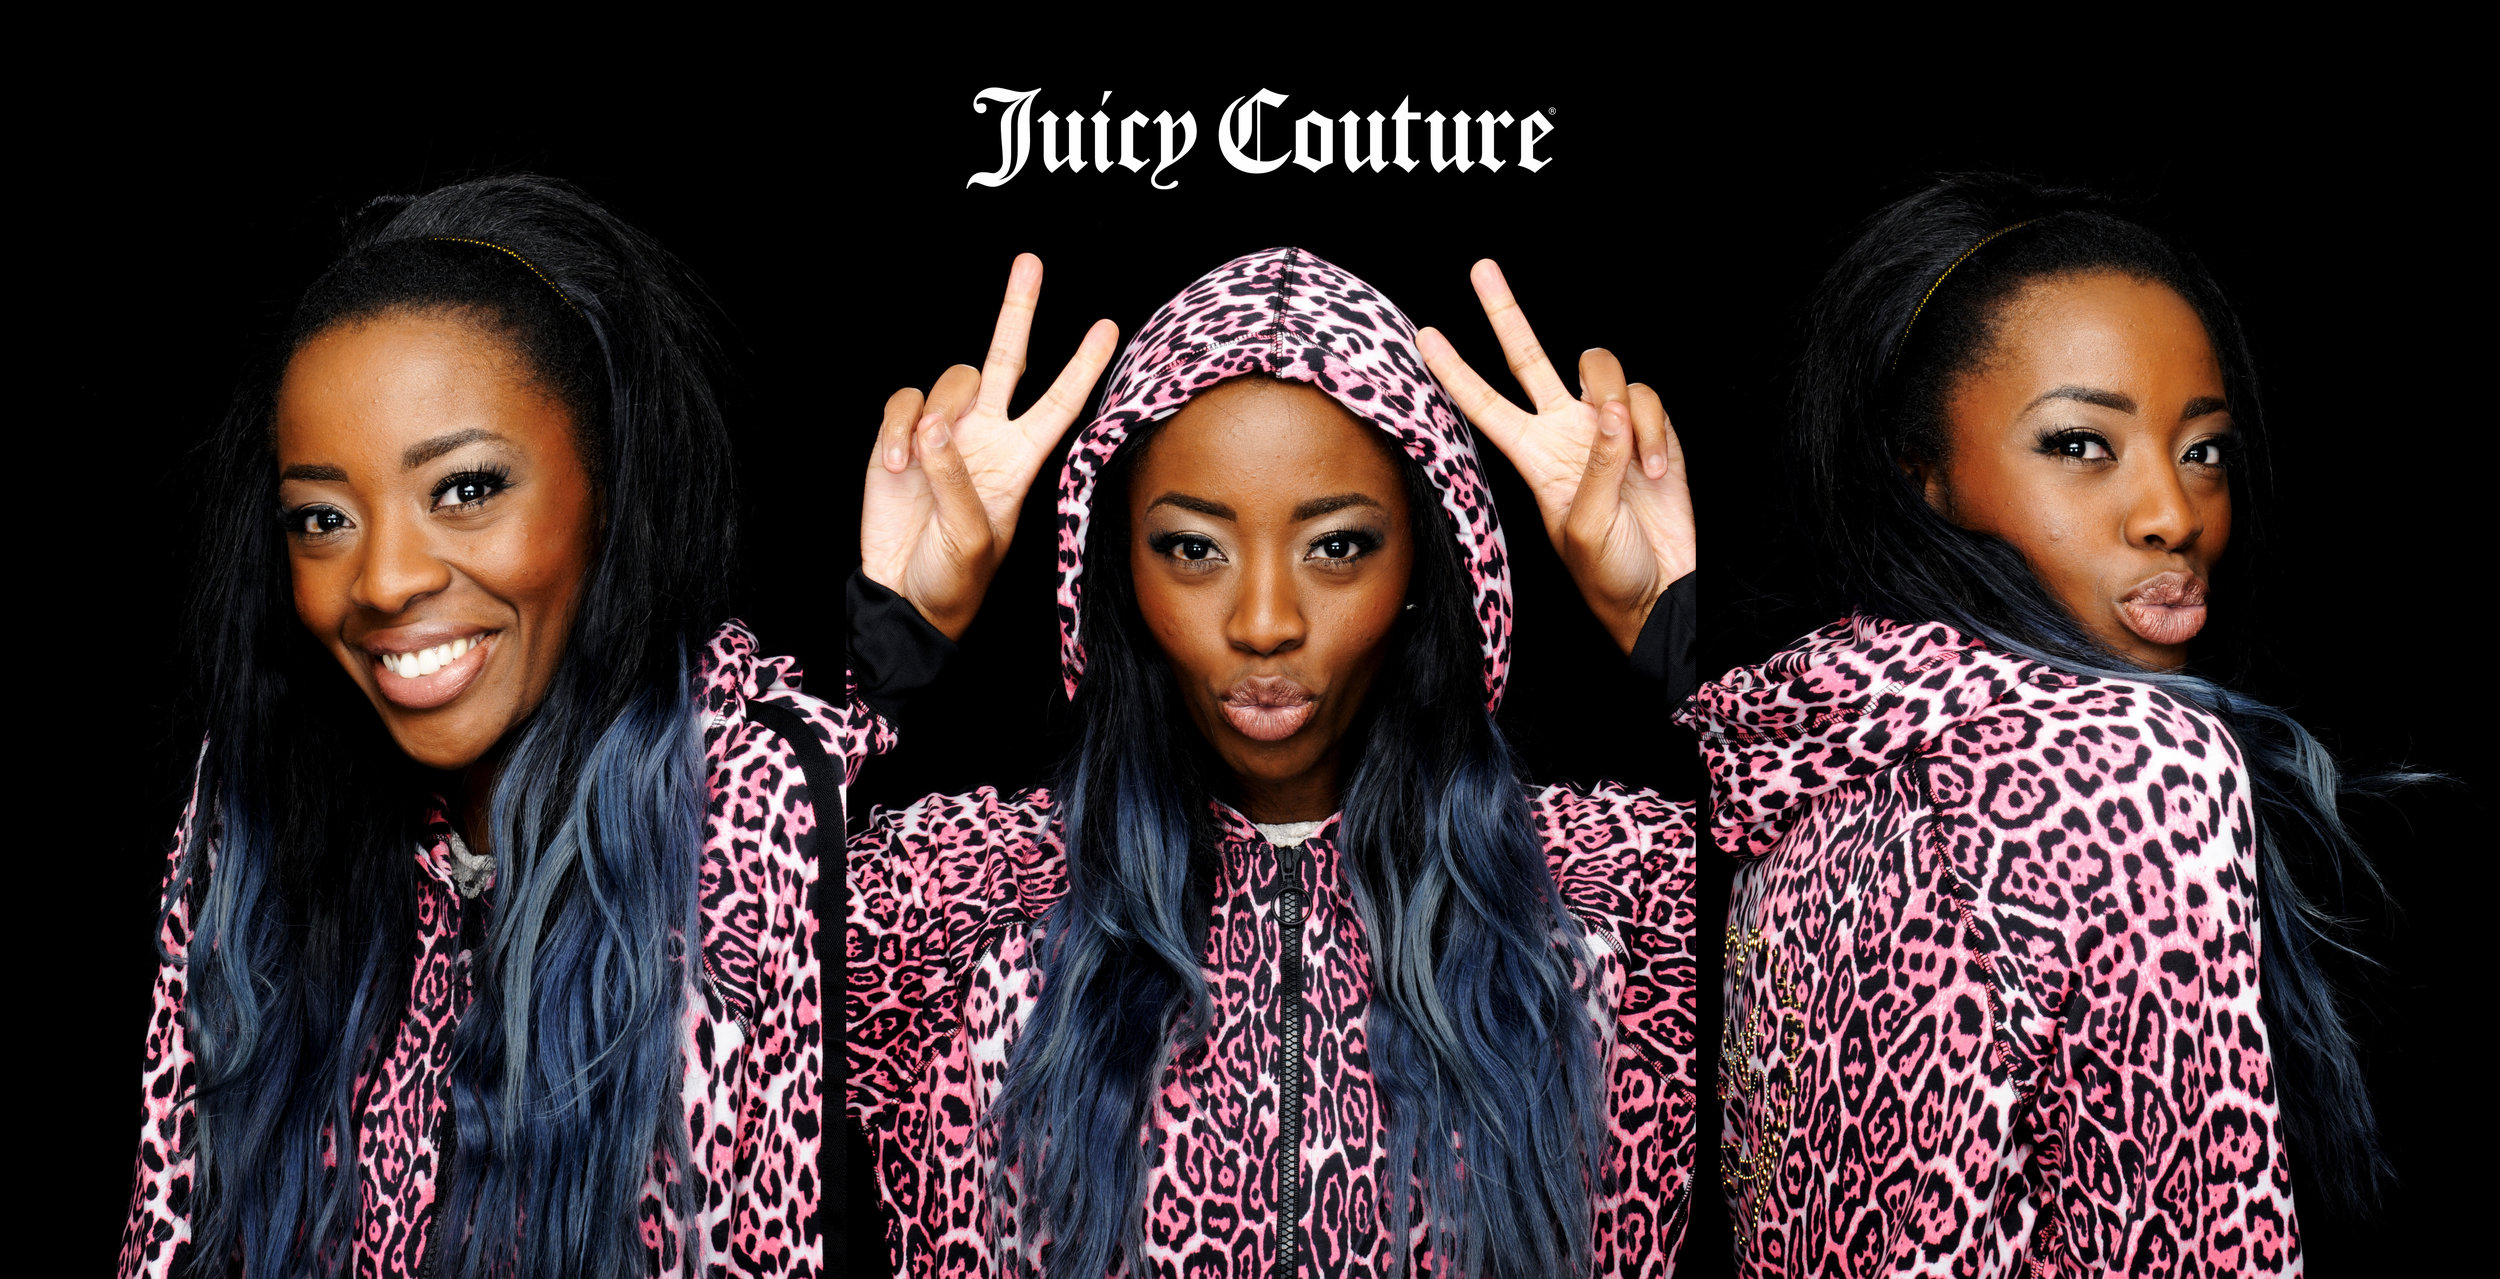 JUICY COUTURE 2.jpg